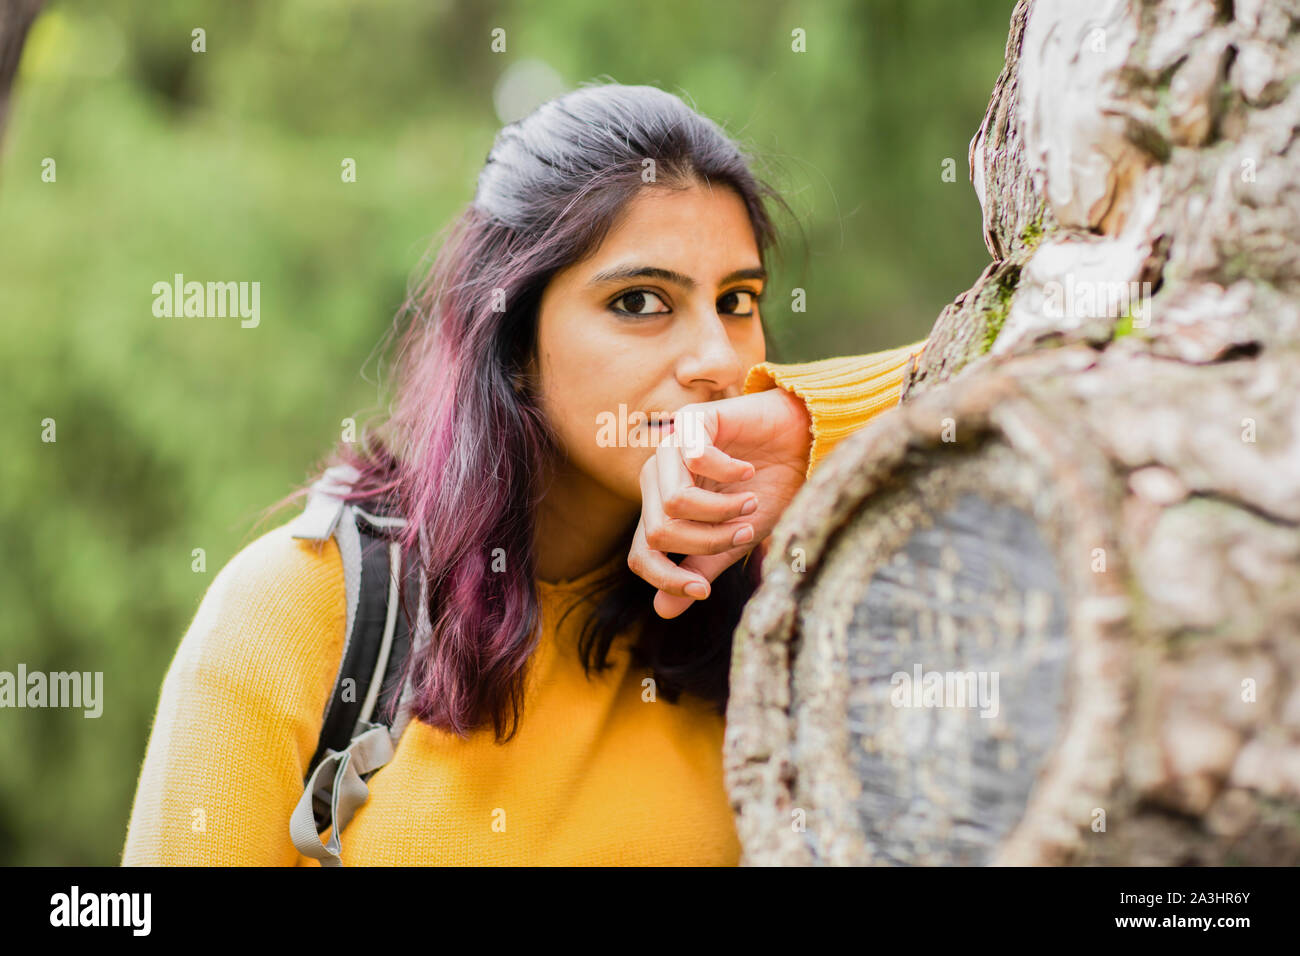 young woman between trees Stock Photo